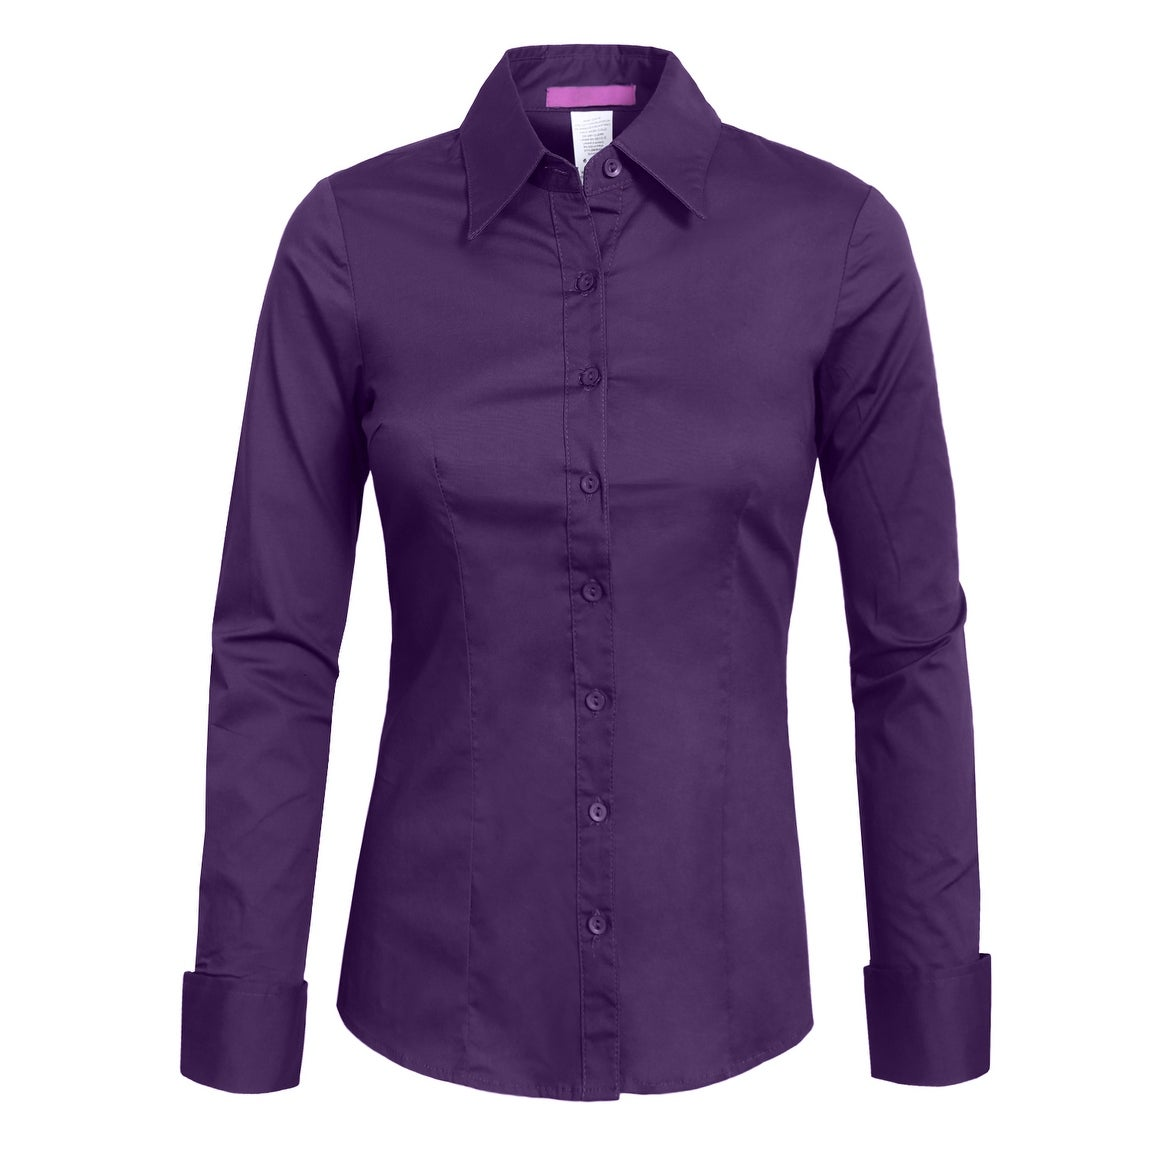 Shop Ne People Womens Tailored Long Sleeve Button Down Shirt Newt04